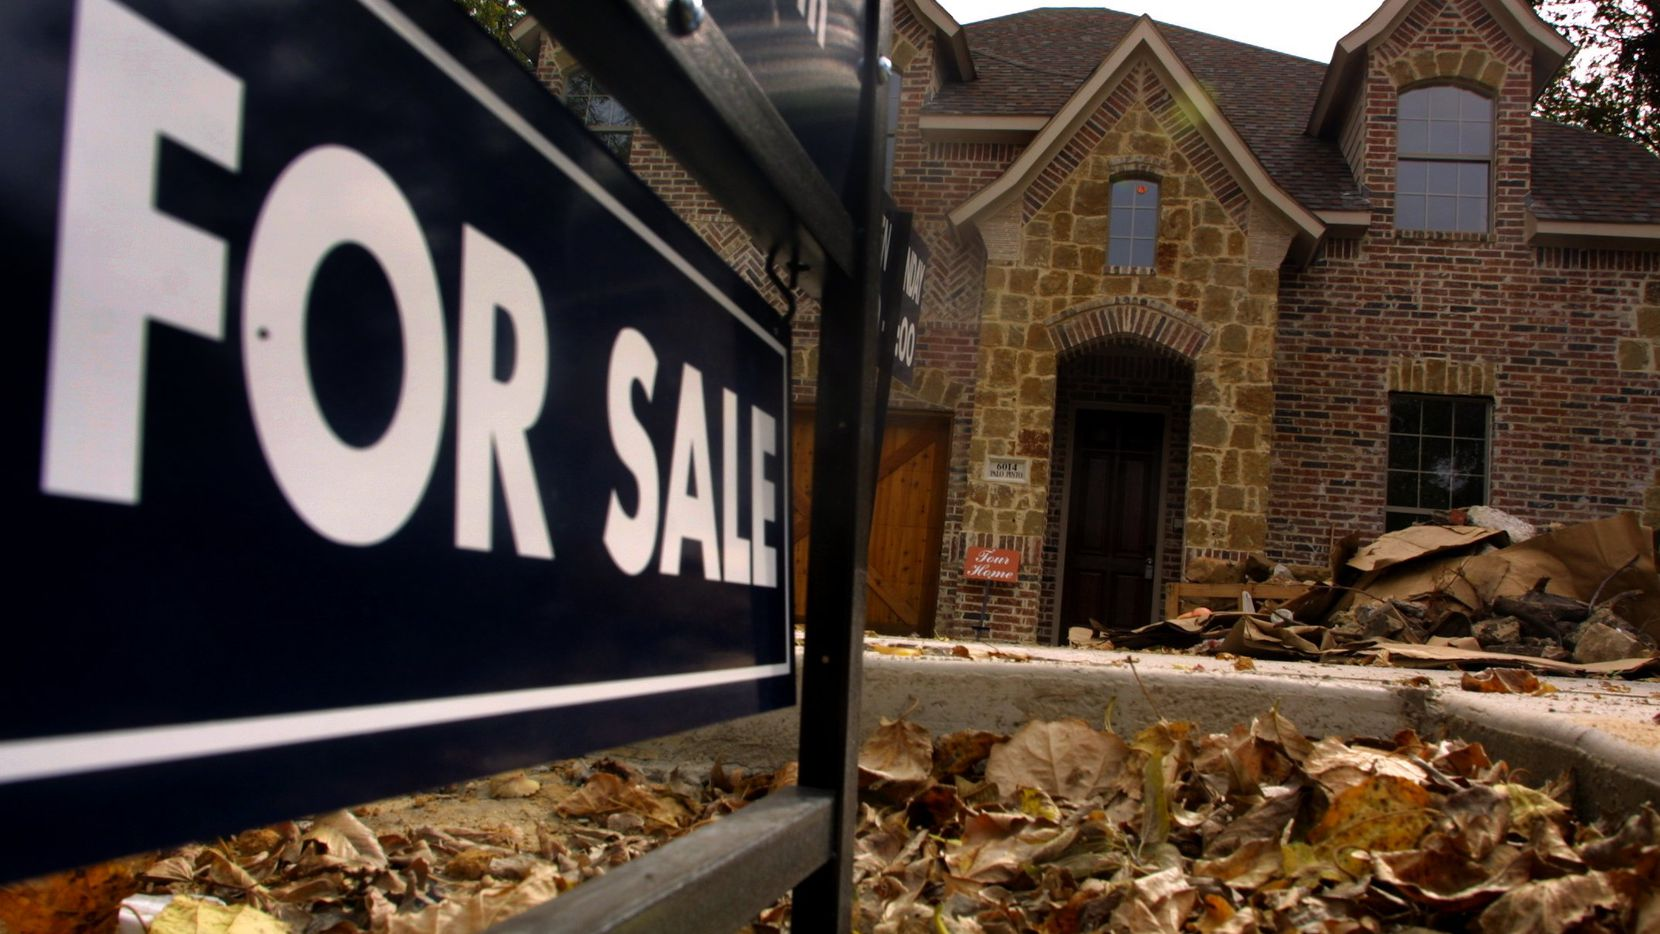 Last year, Ben Caballero's HomesUSA listed more than 3,500 new homes that sold in Texas for more than $1.4 billion.